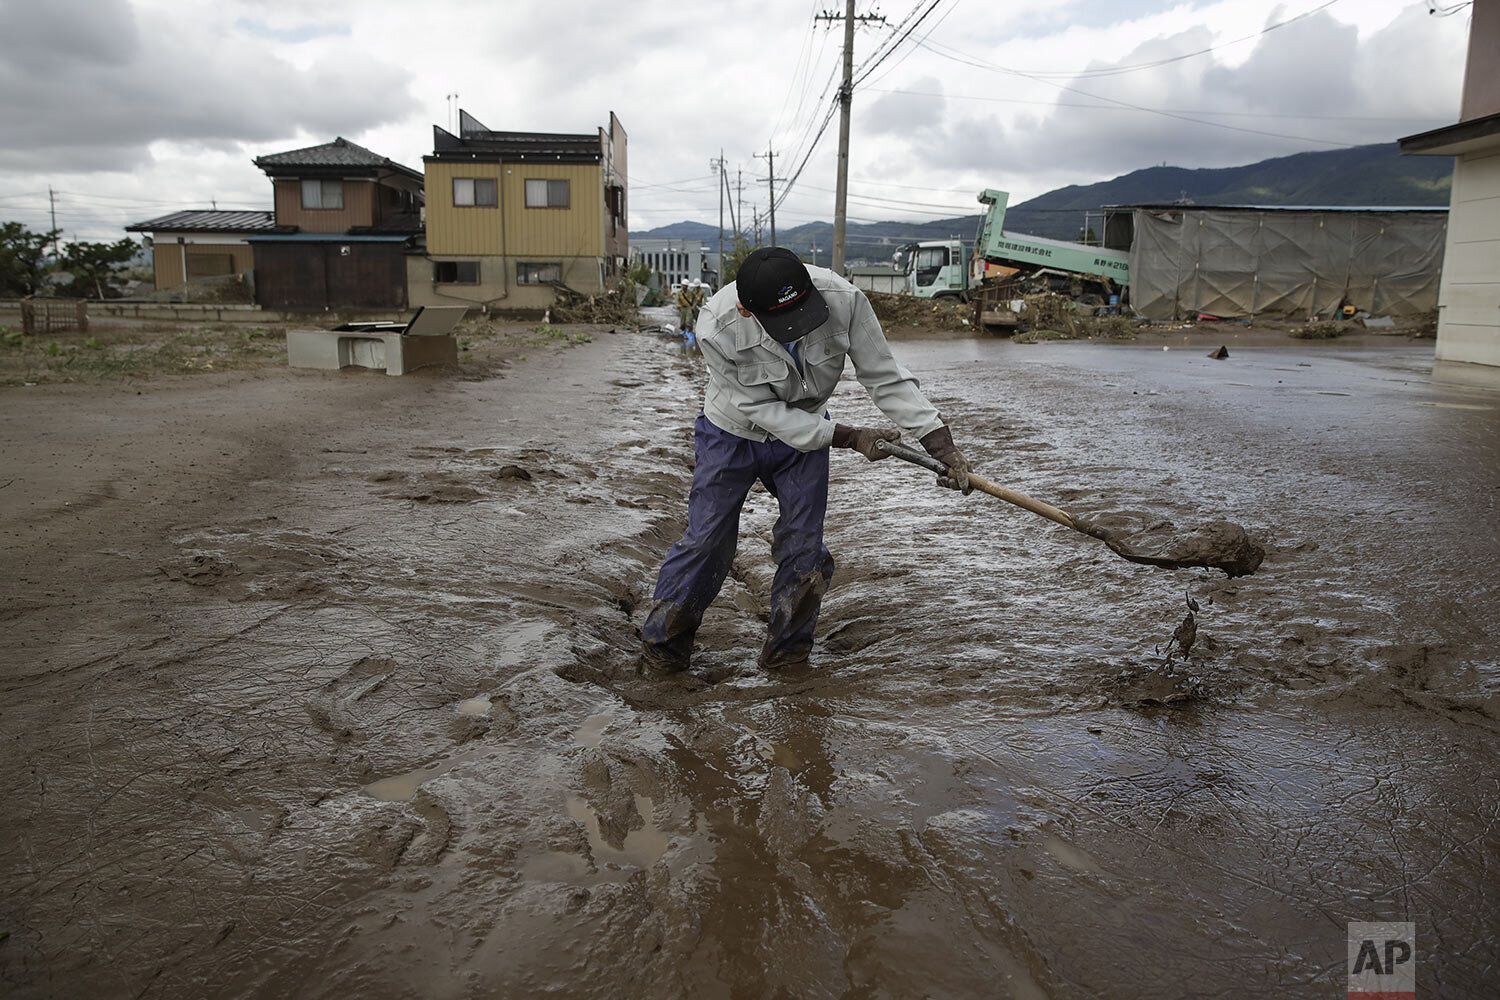 A man uses a shovel to scoop mud in a neighborhood devastated by Typhoon Hagibis Tuesday, Oct. 15, 2019, in Nagano, Japan.  (AP Photo/Jae C. Hong)